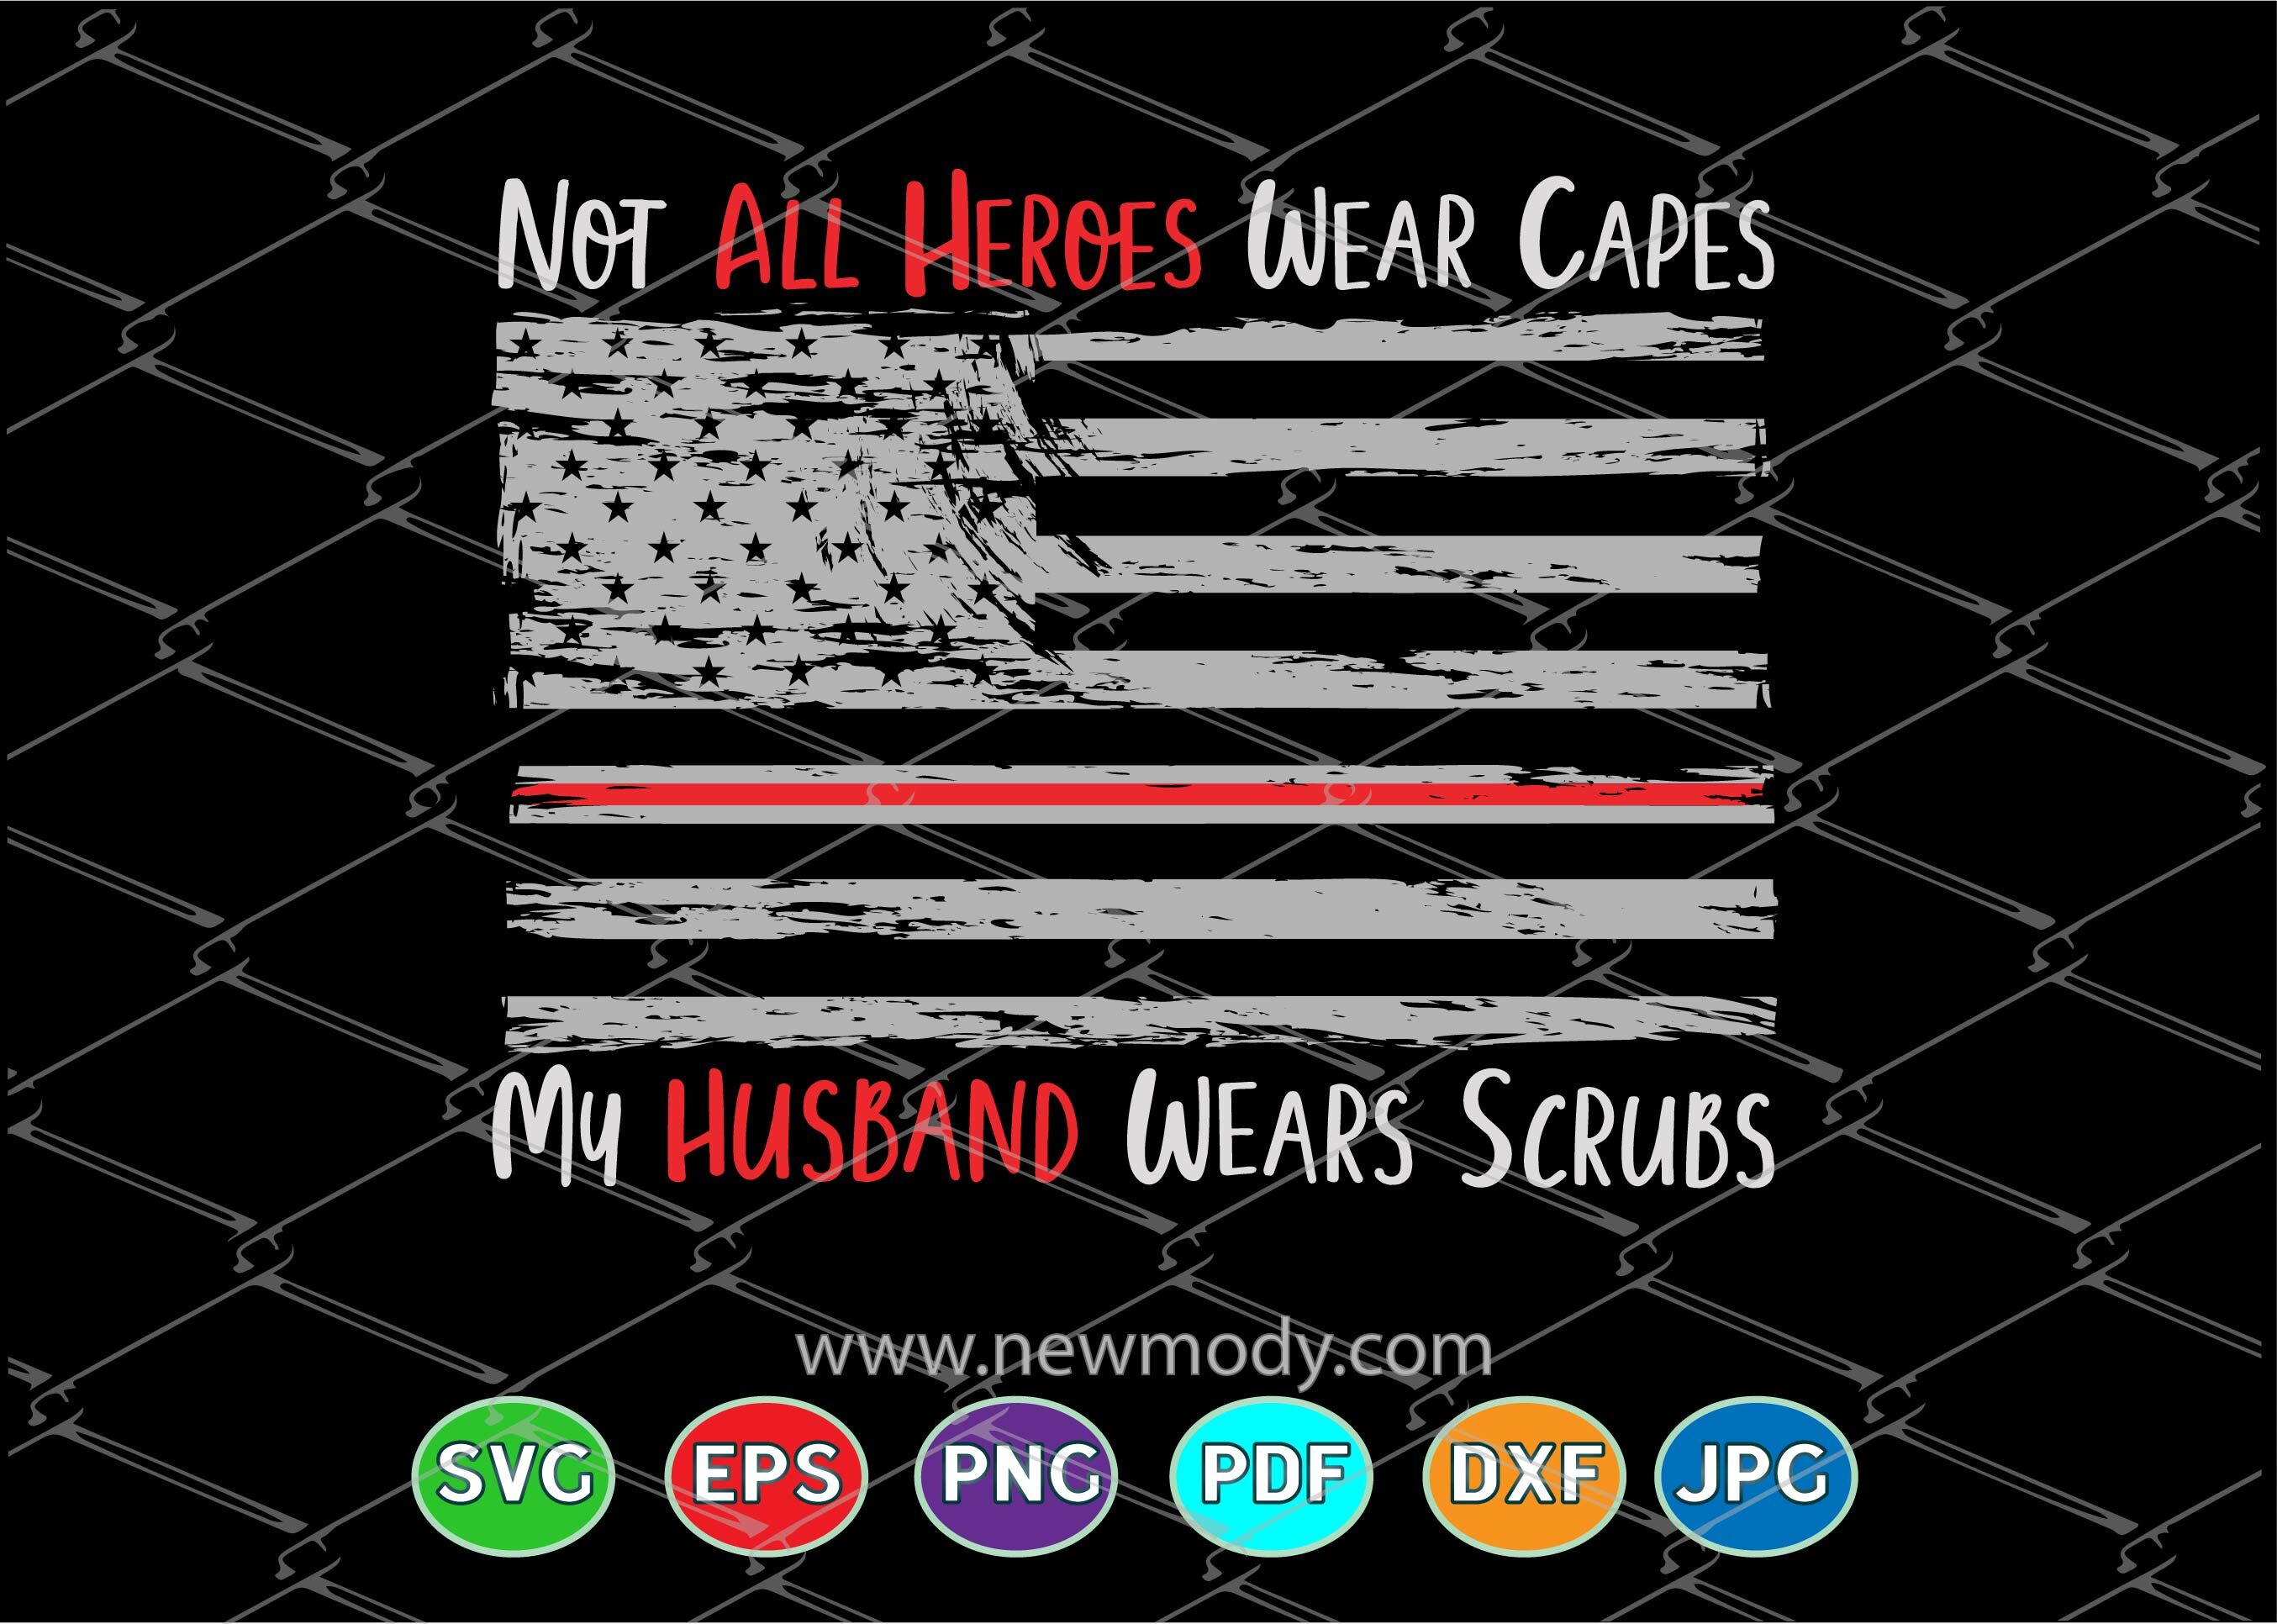 Our Heroes wear scrubs decal